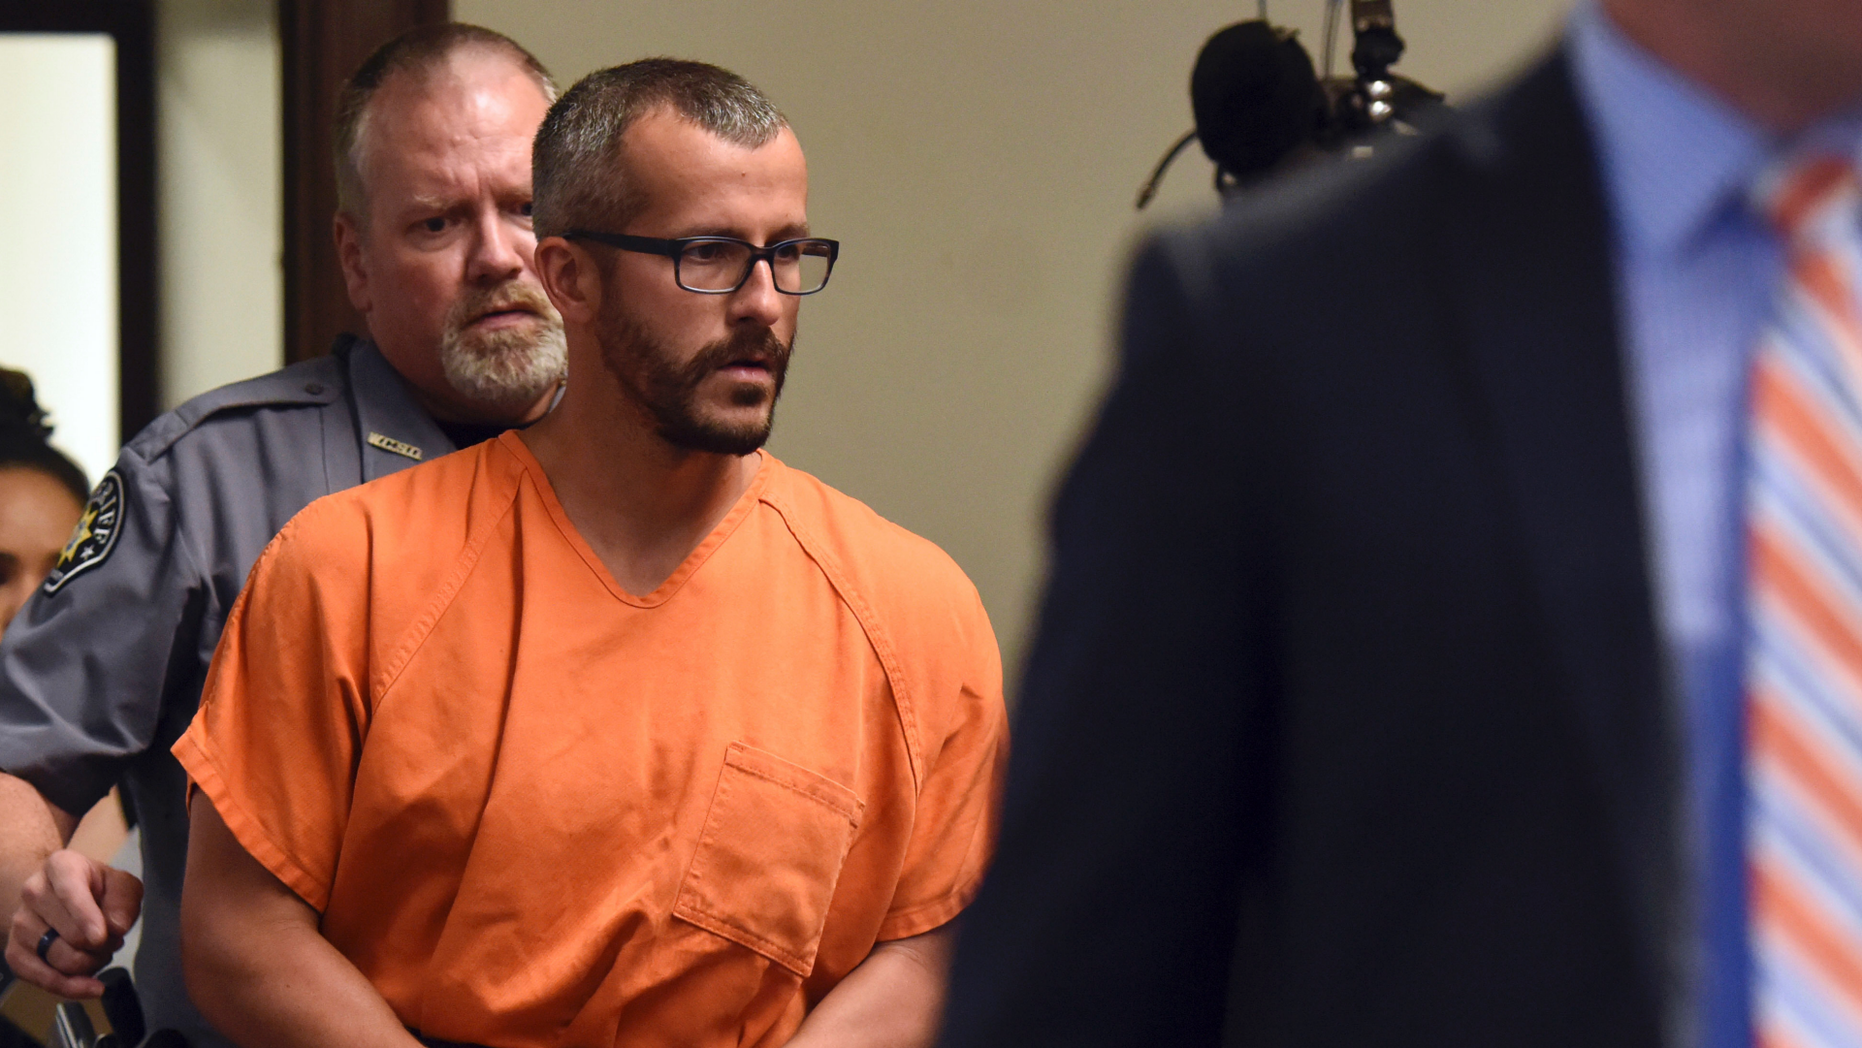 Colorado man who murdered his family given life sentence